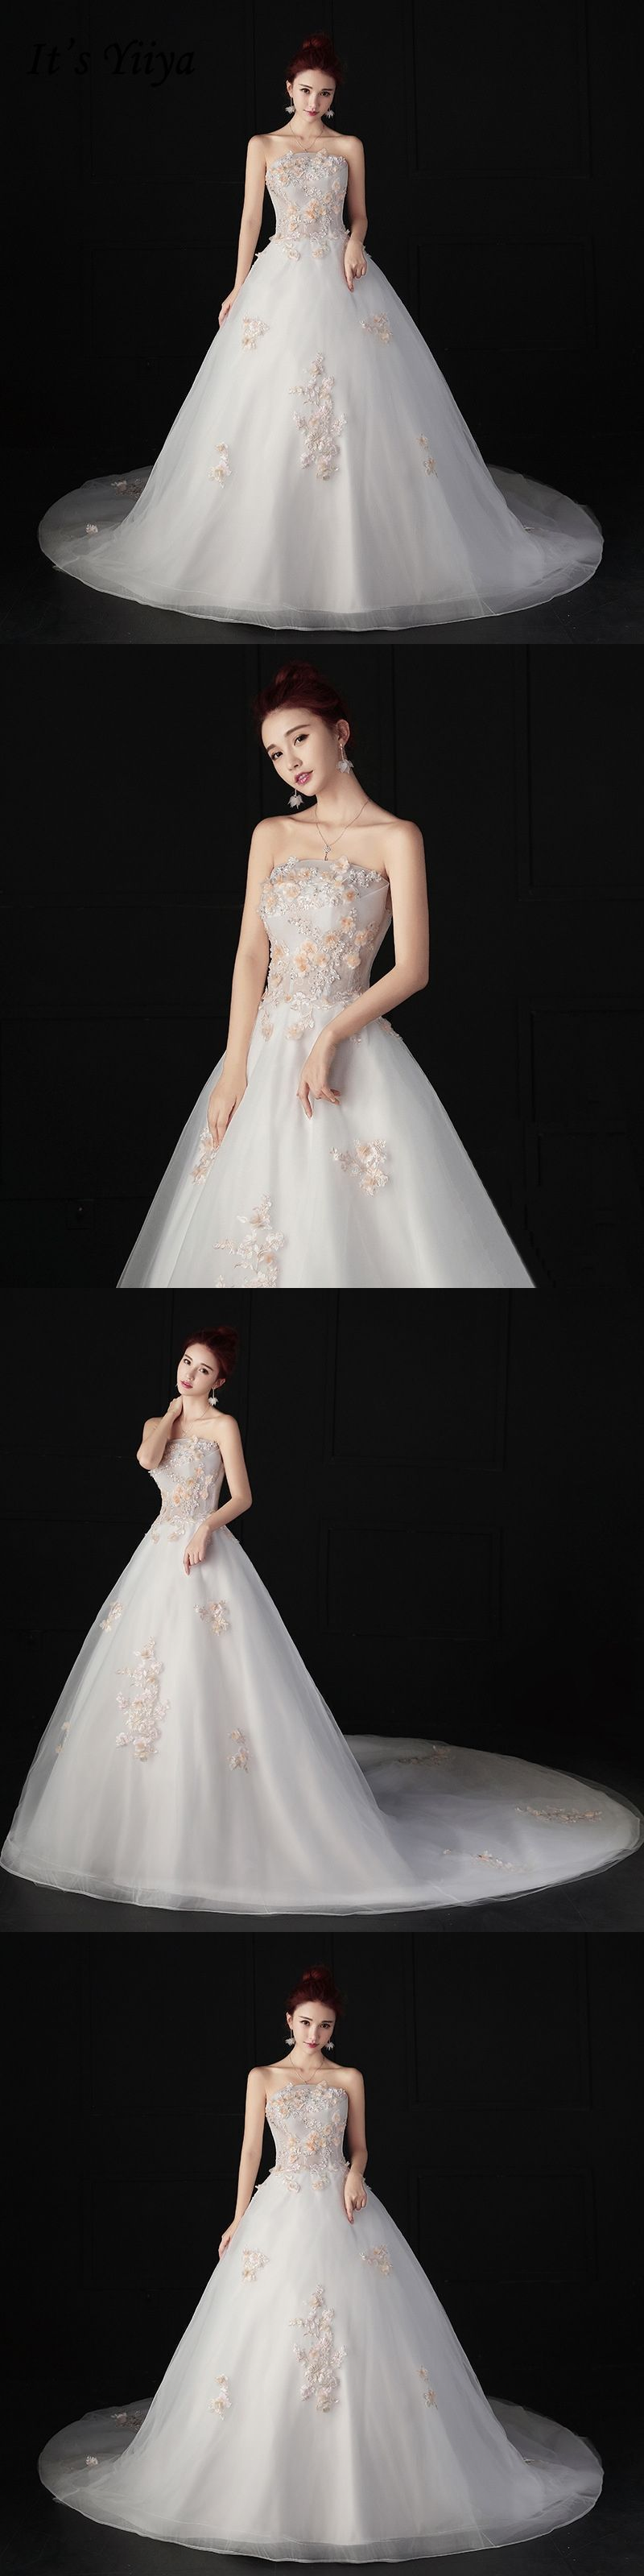 Itus yiiya off white sales strapless vestidos de novia wedding frock